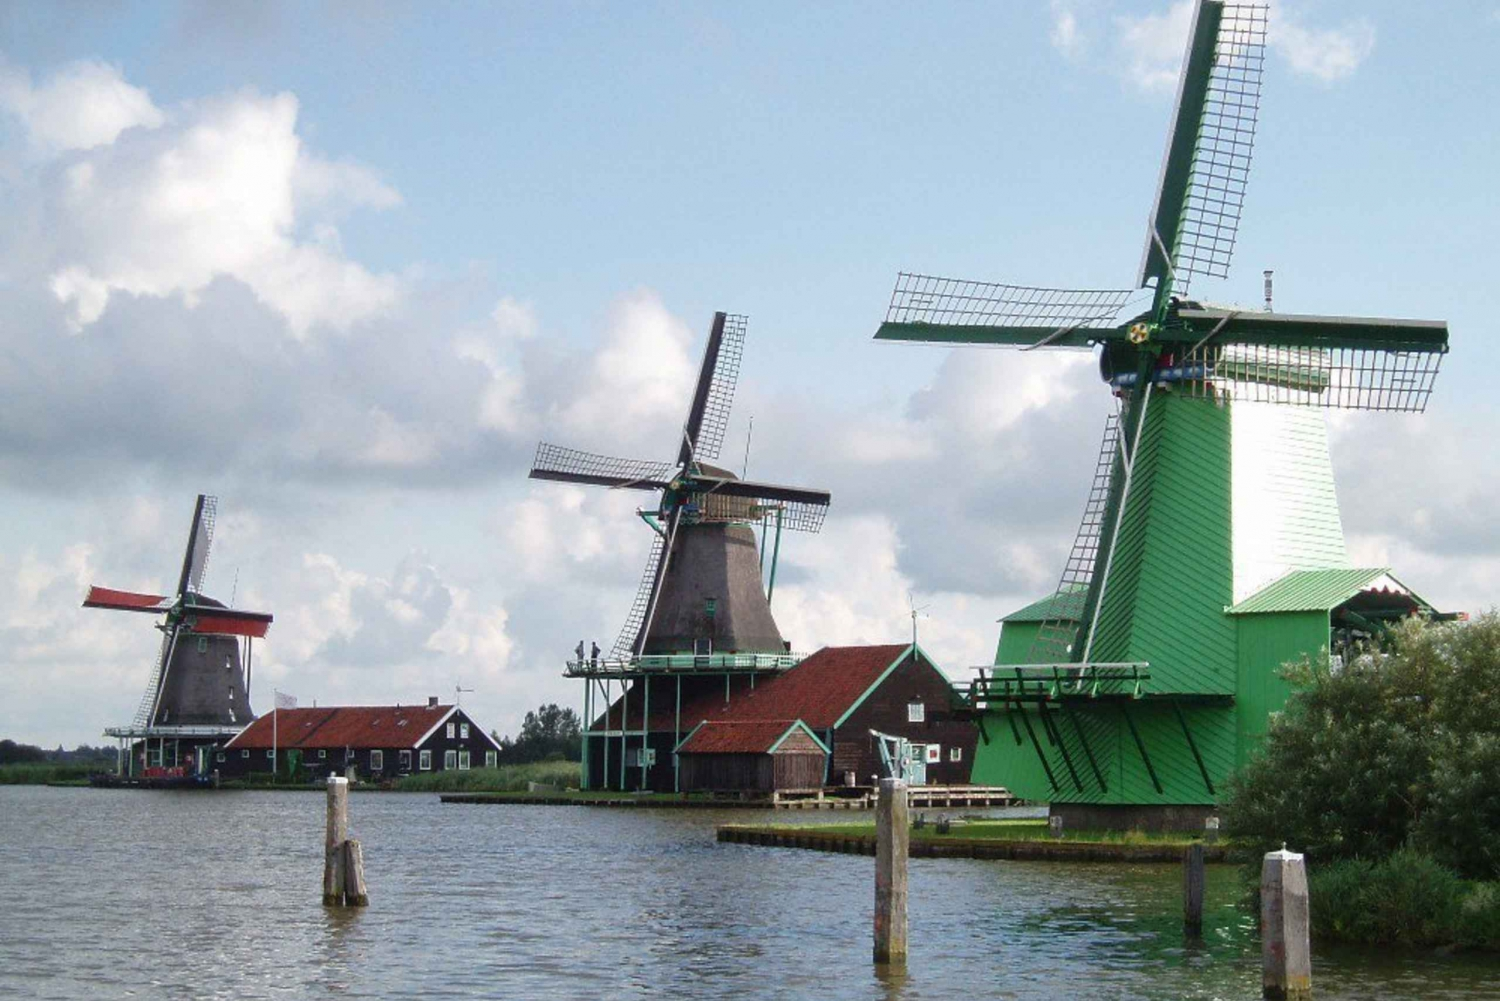 3-Hour Zanse Schaans Windmills Tour w/ Guide